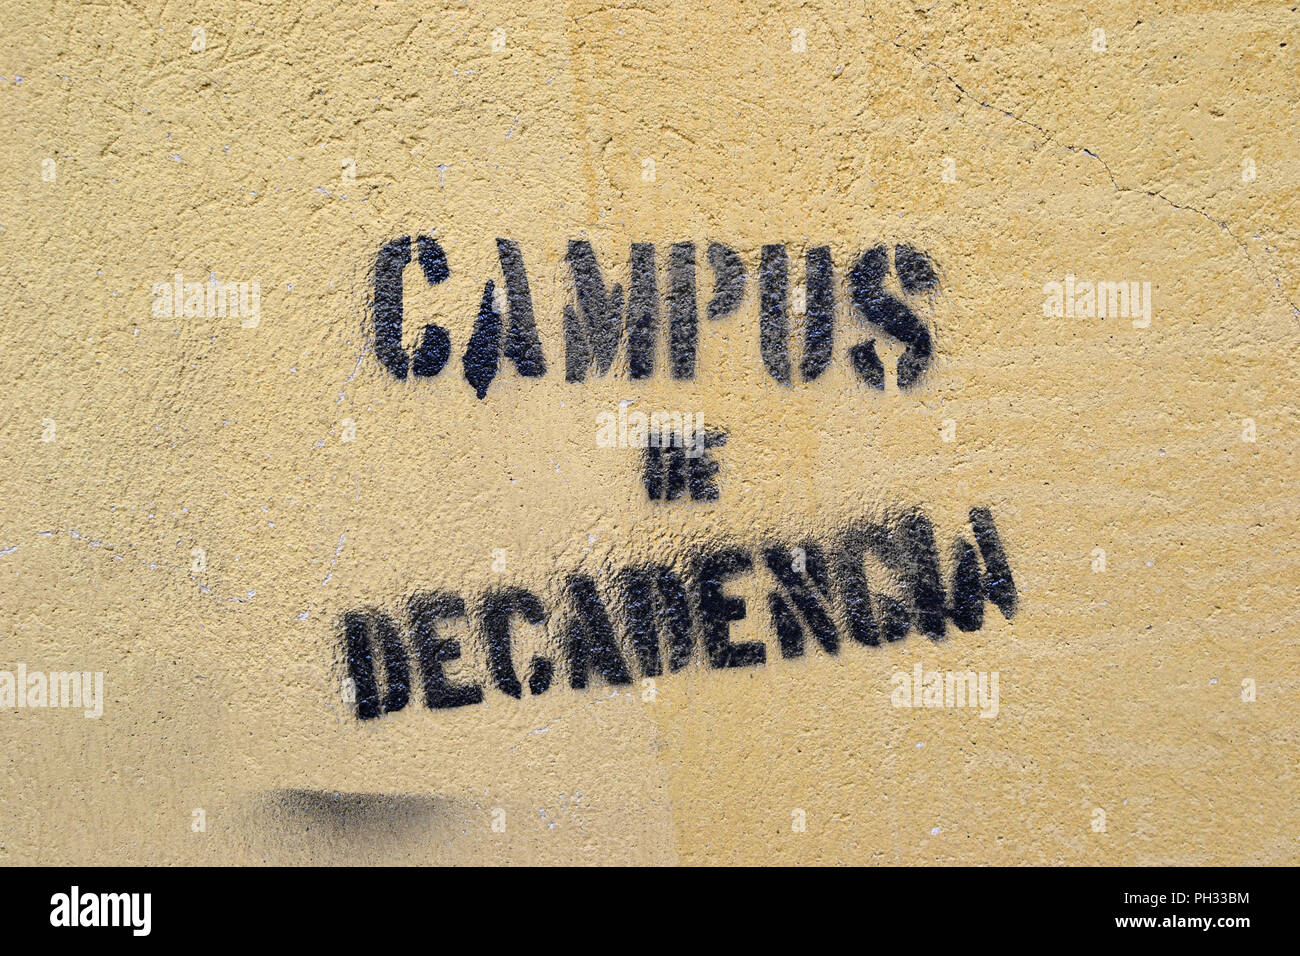 Stenciled Graffiti On A Wall At The Campus Of The University Of Oviedo In Oviedo Asturias Spain Claiming It To Be A Campus Of Decline